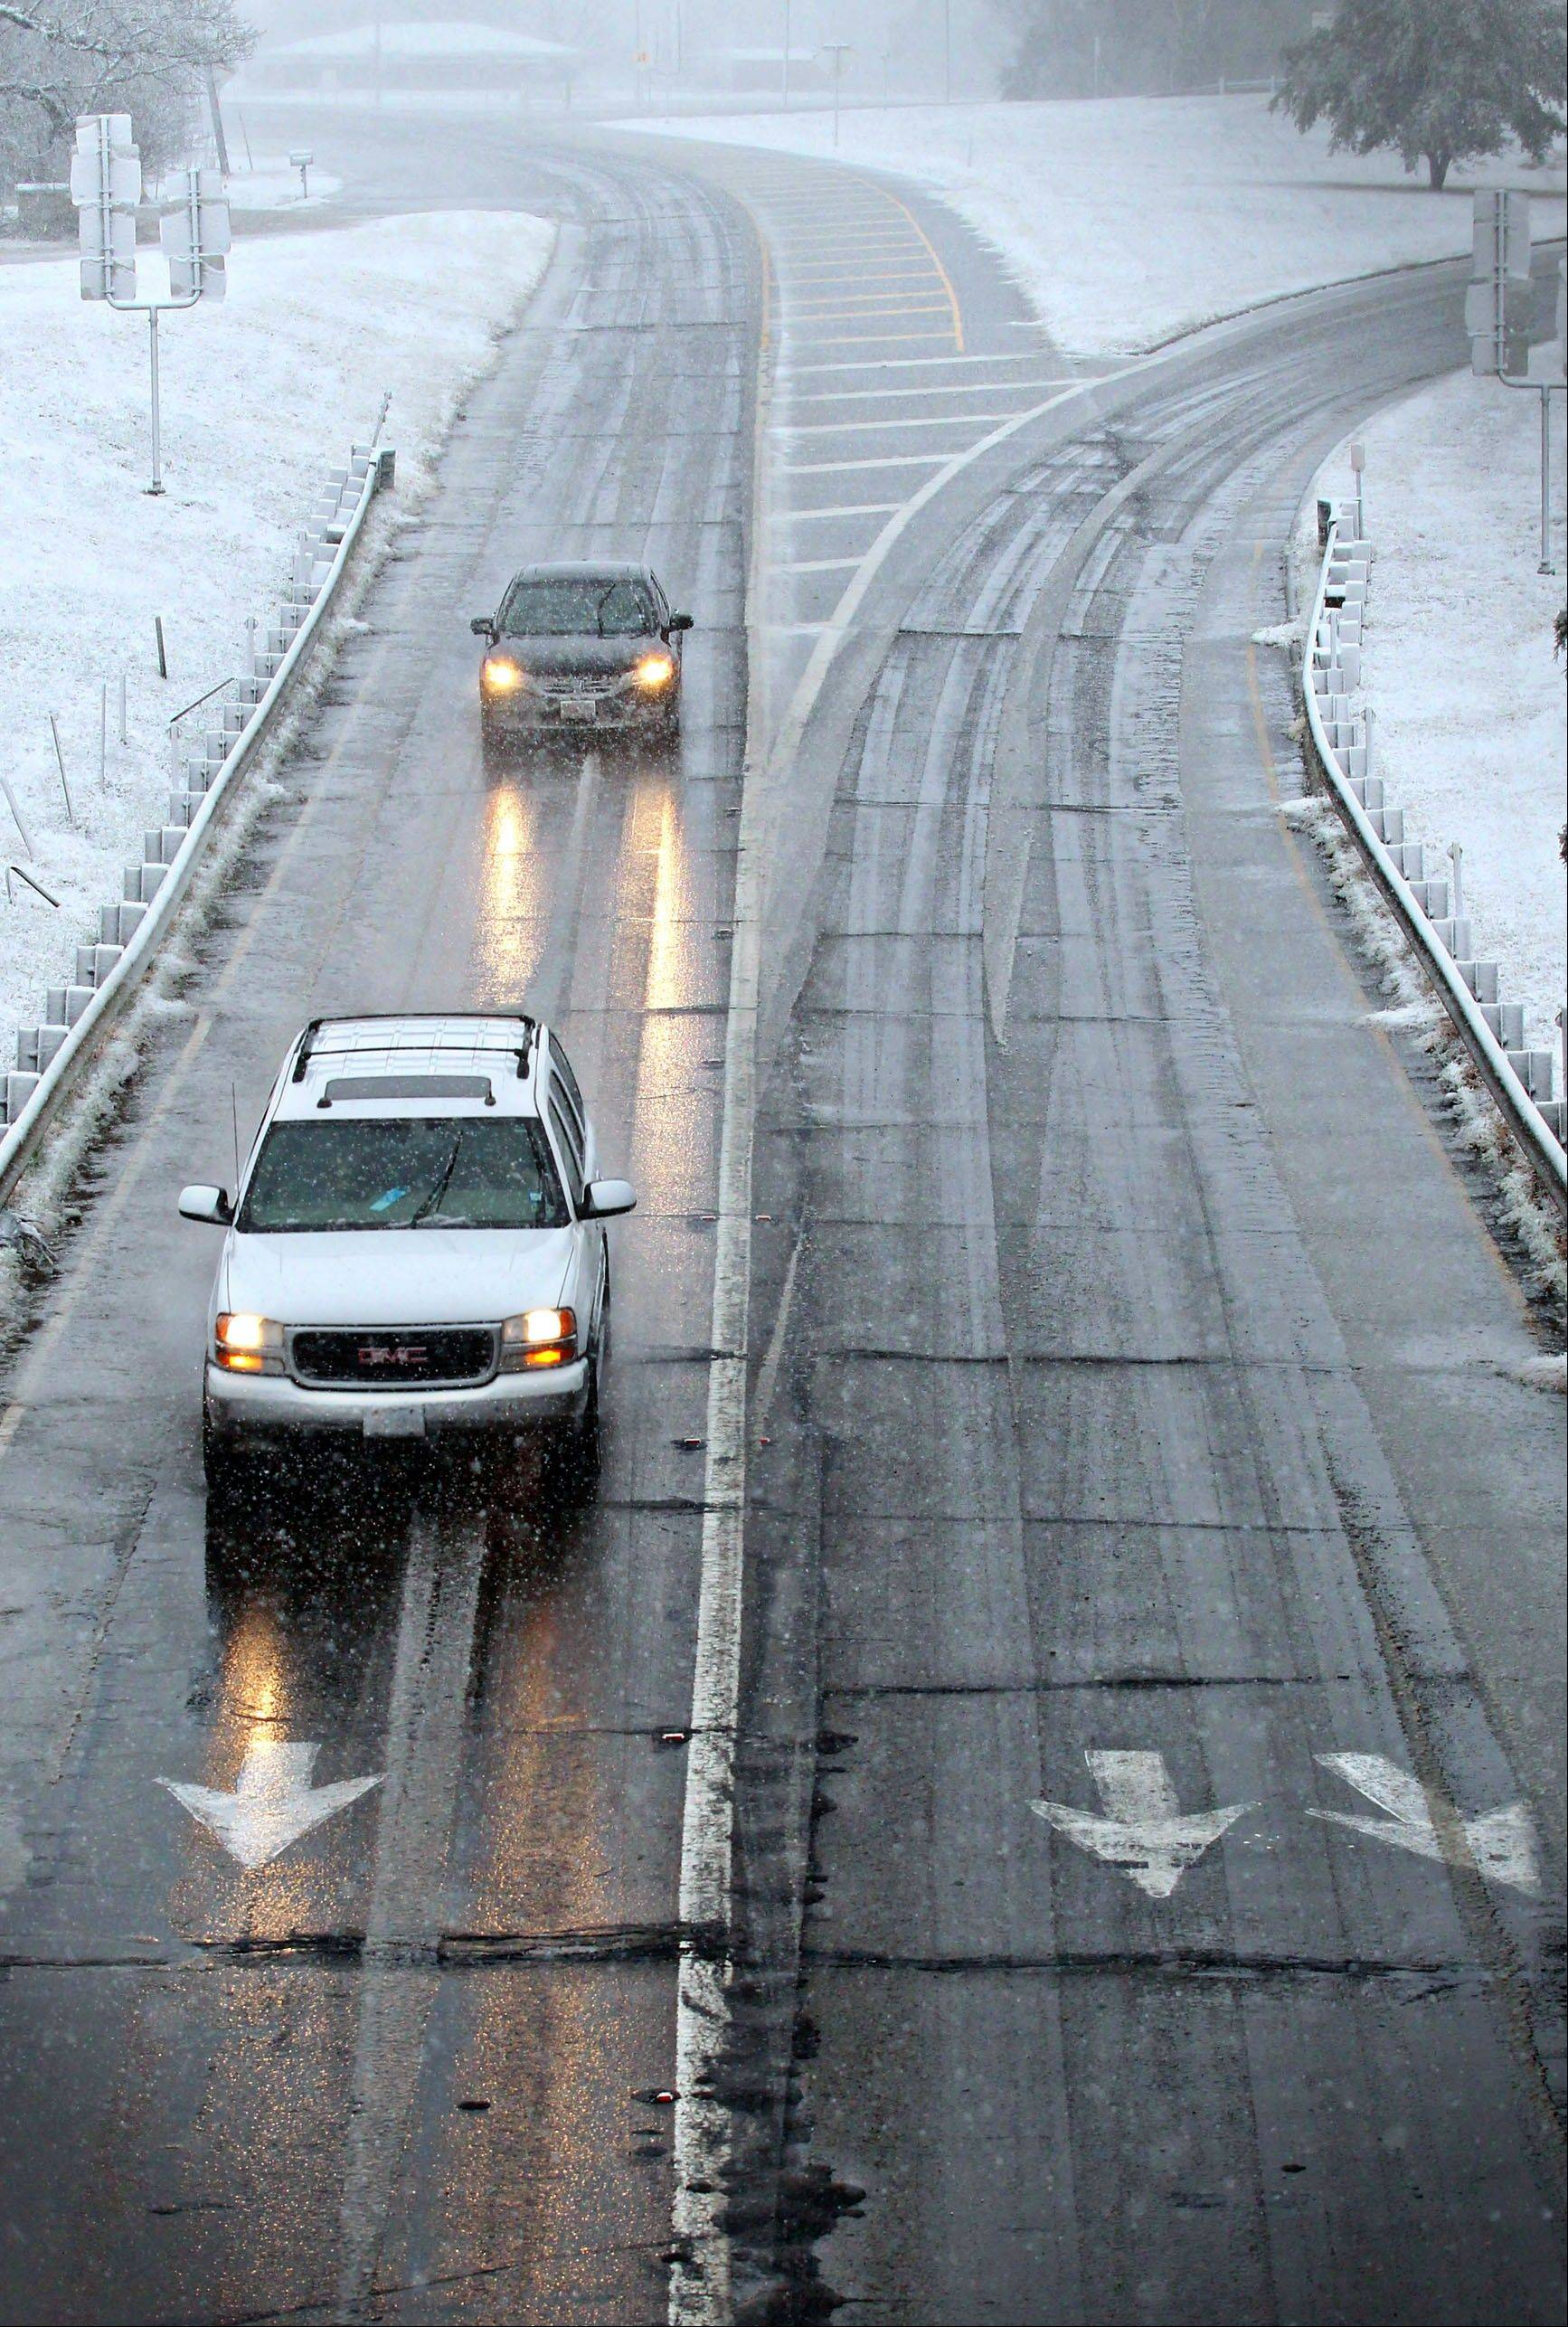 Drivers maneuver wet and icy roads in Paris, Texas Tuesday, Dec. 25, 2012 after a strong winter system dropped inches of rain and snow on most of North East Texas.